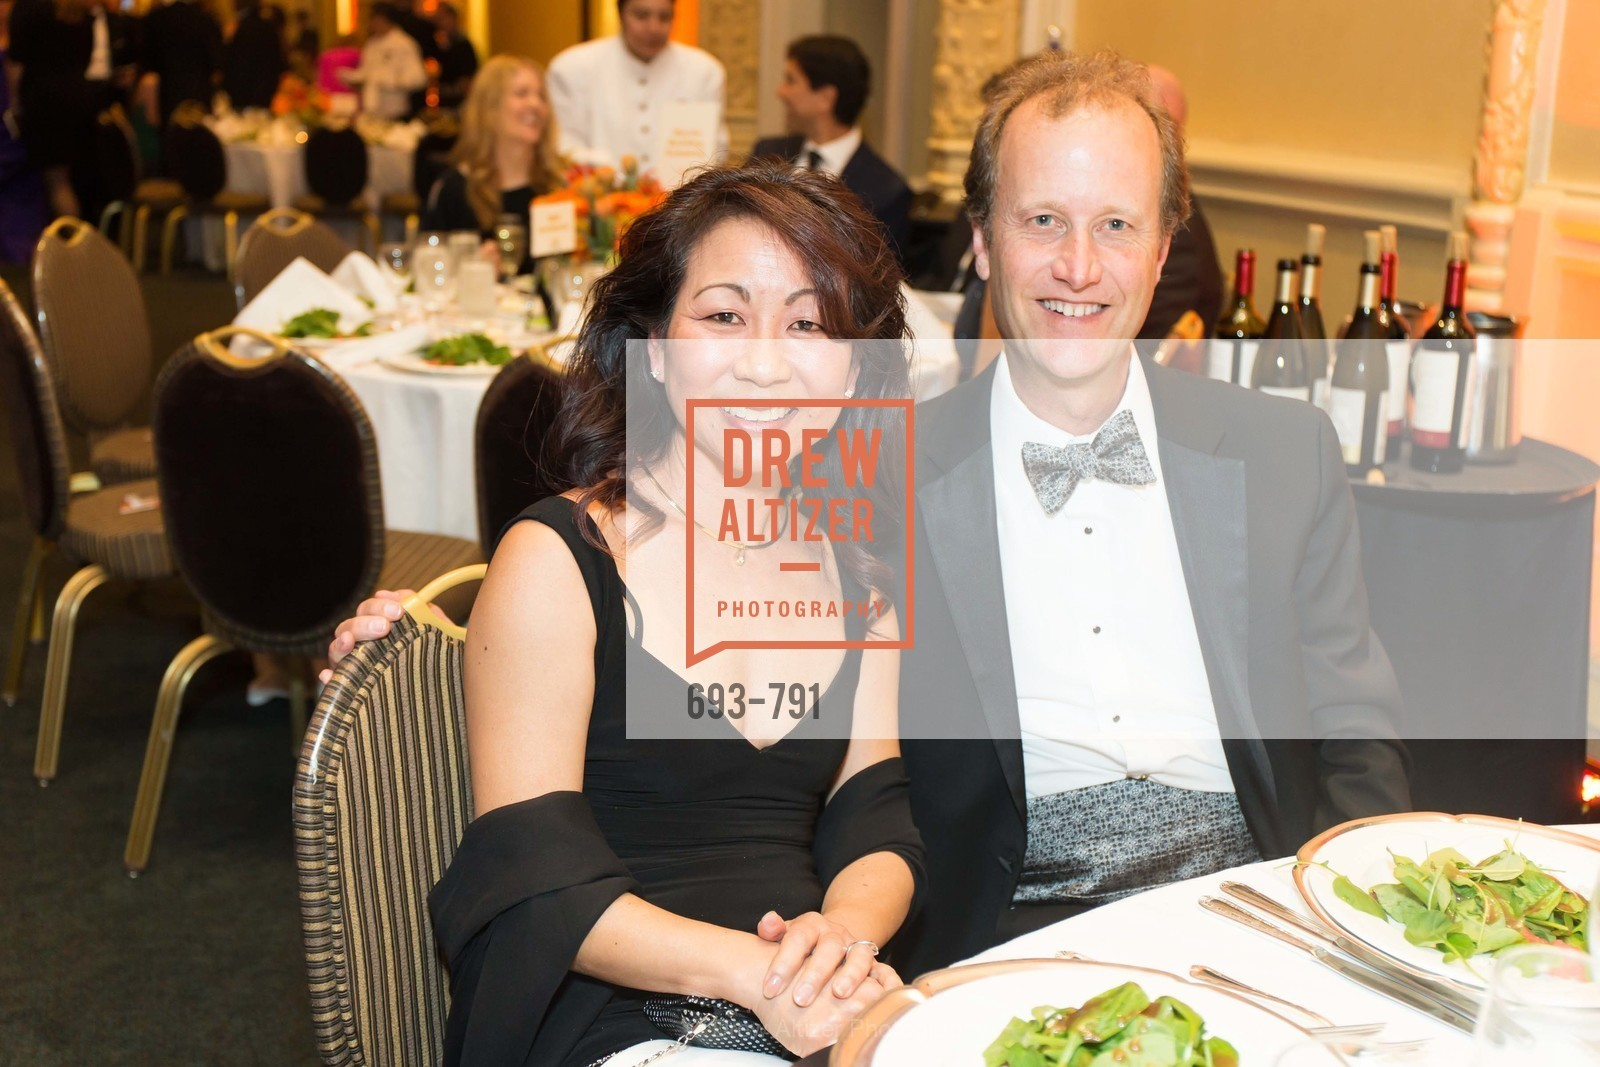 Evon Ballash, Duncan Ballash, SAN FRANCISCO HERITAGE Soiree 2015, US, April 18th, 2015,Drew Altizer, Drew Altizer Photography, full-service agency, private events, San Francisco photographer, photographer california